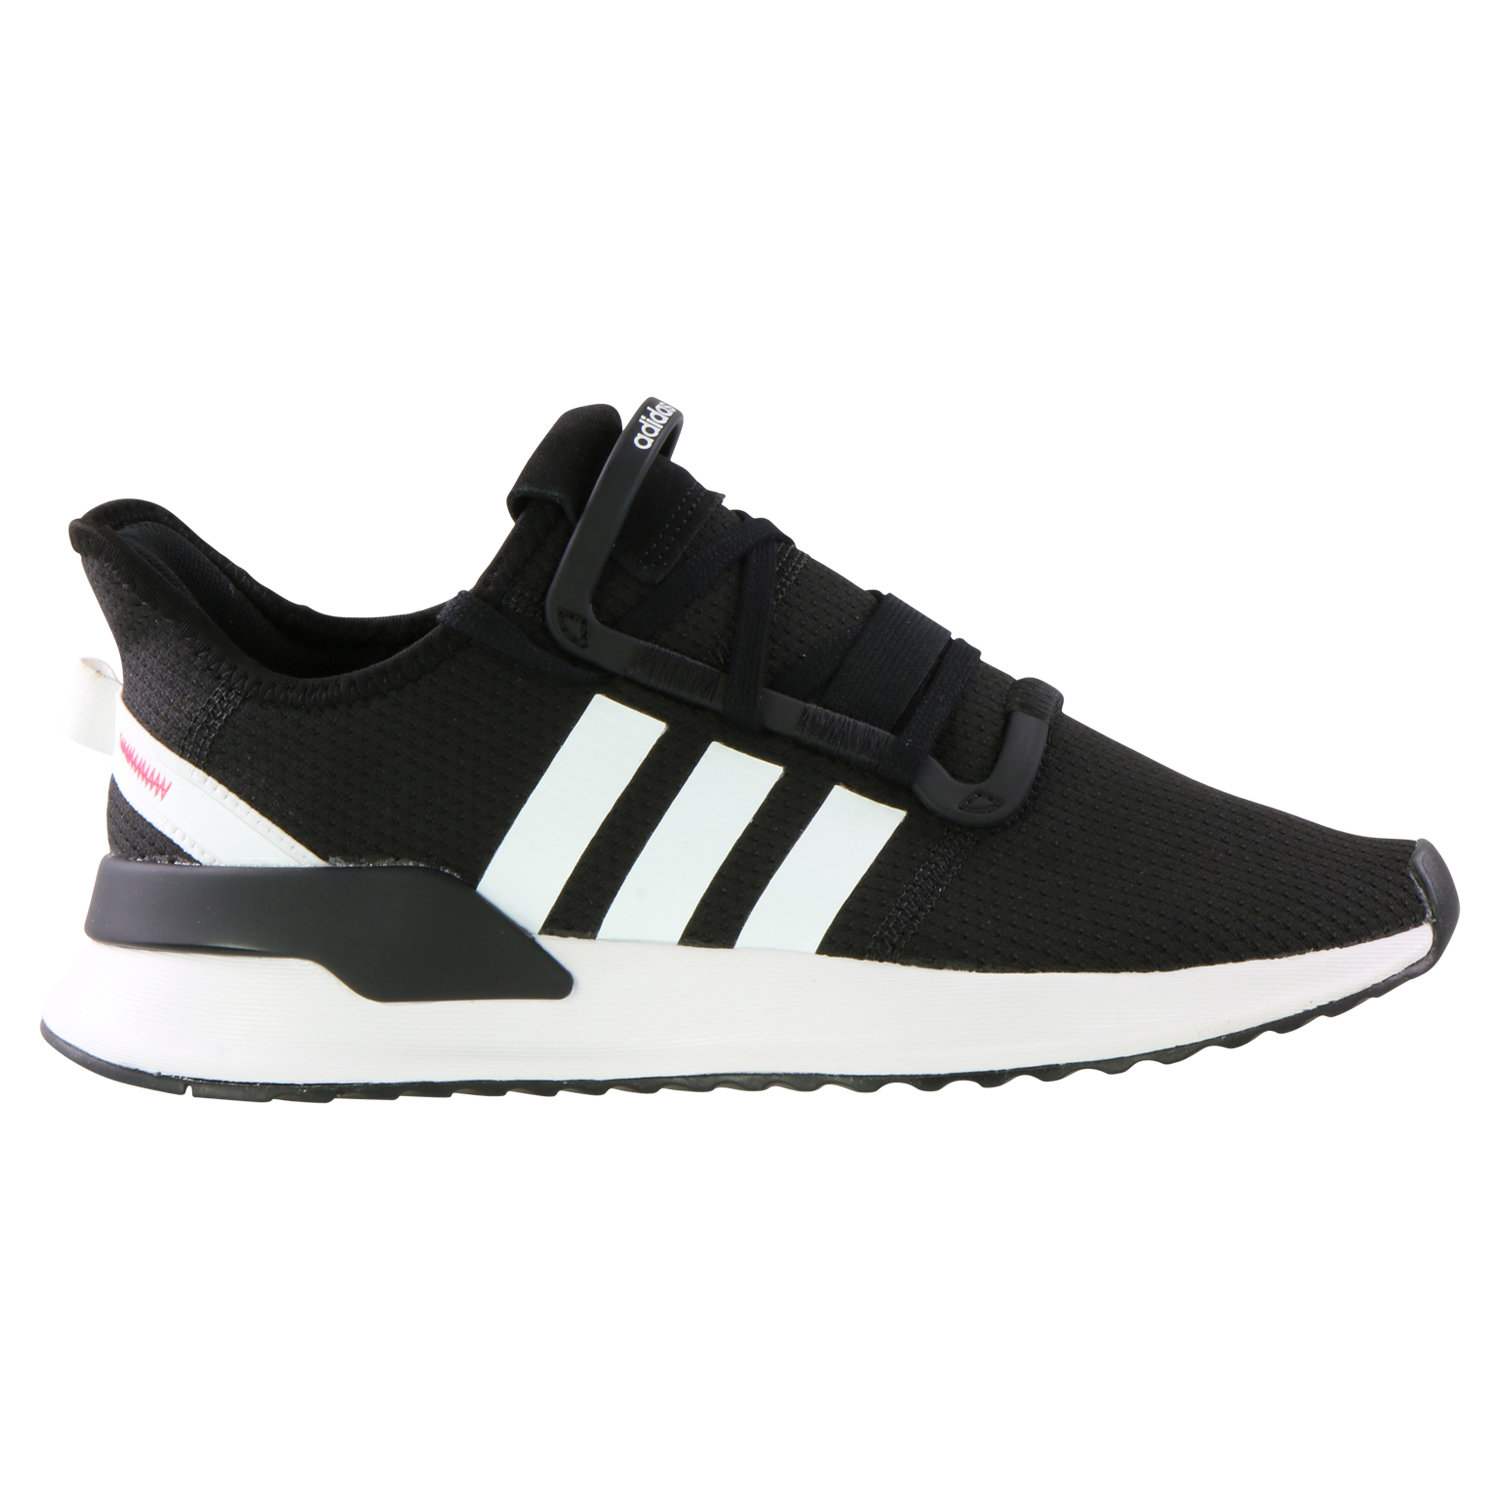 Details zu Adidas Originals U_Path Run Junior Sneaker Schuhe Kinder Damen Schwarz G28108